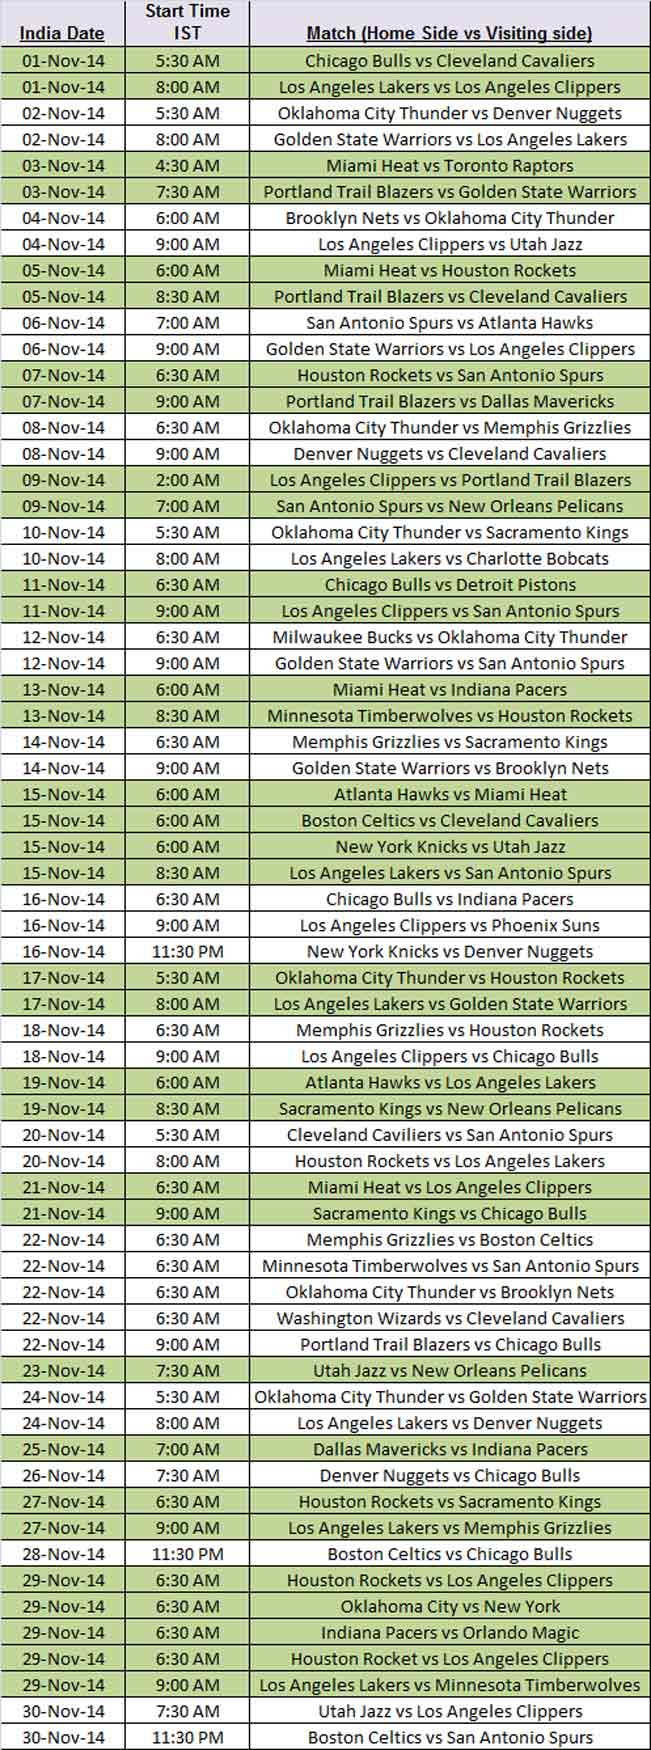 NBA 2014-15 Broadcast Schedule of November matches to be